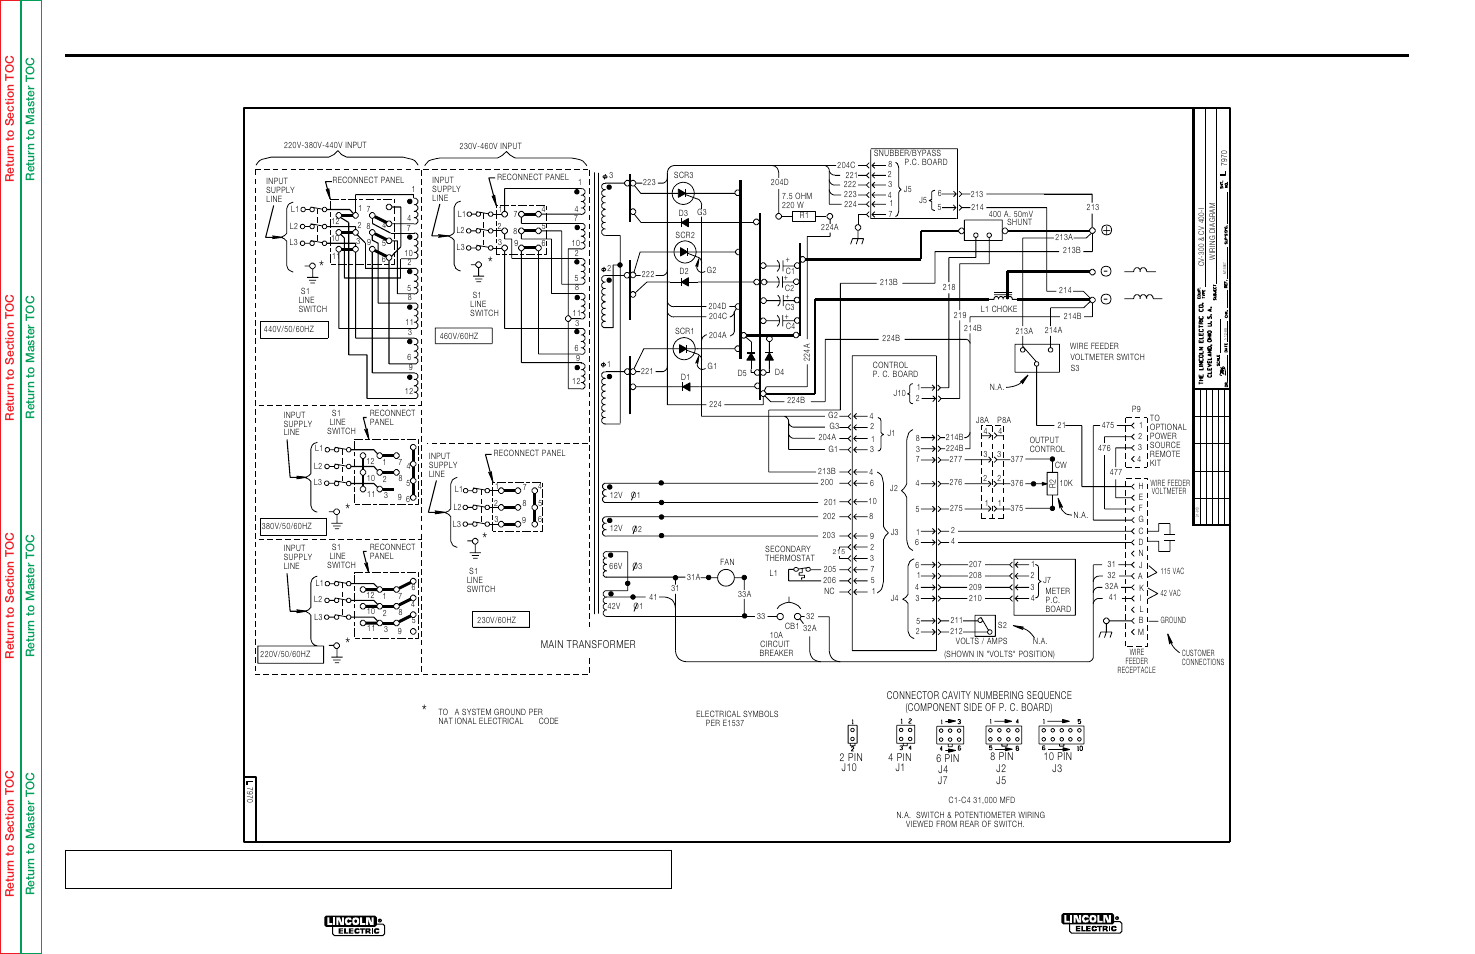 idealarc welder diagram flagella structure lincoln 300 wiring auto electrical diagrams for code 9456